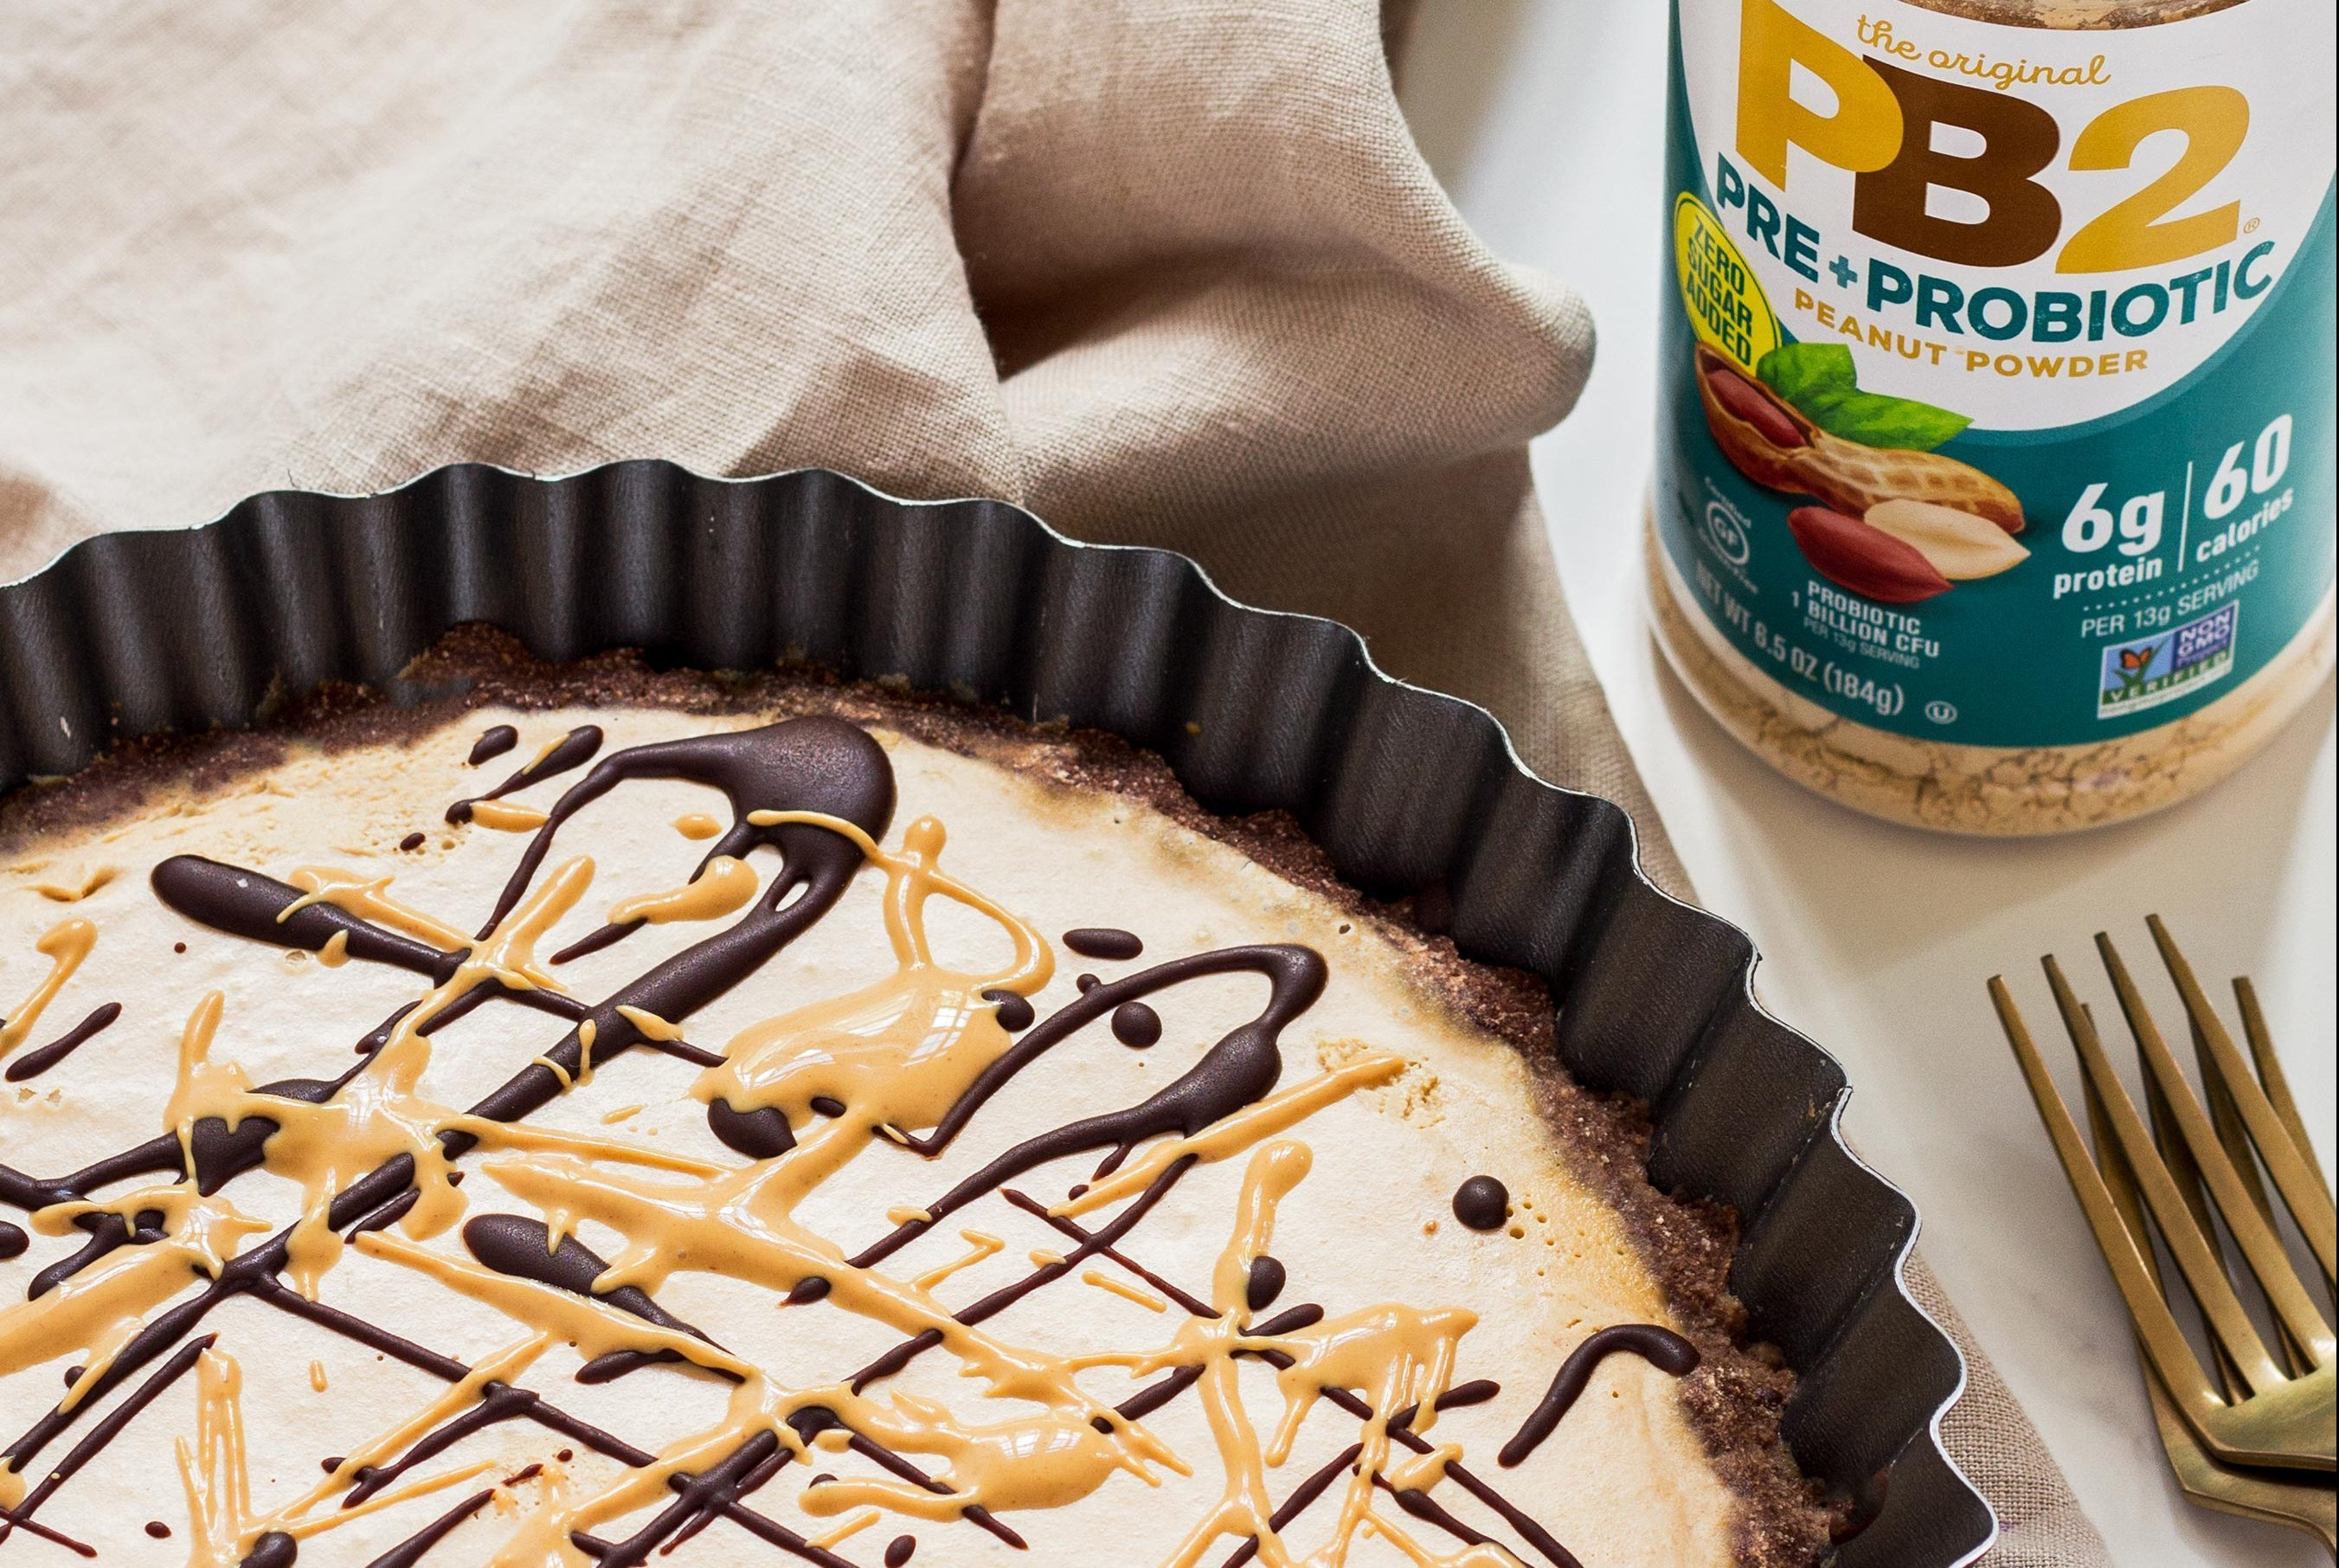 PB2 Peanut Butter Pie Recipe